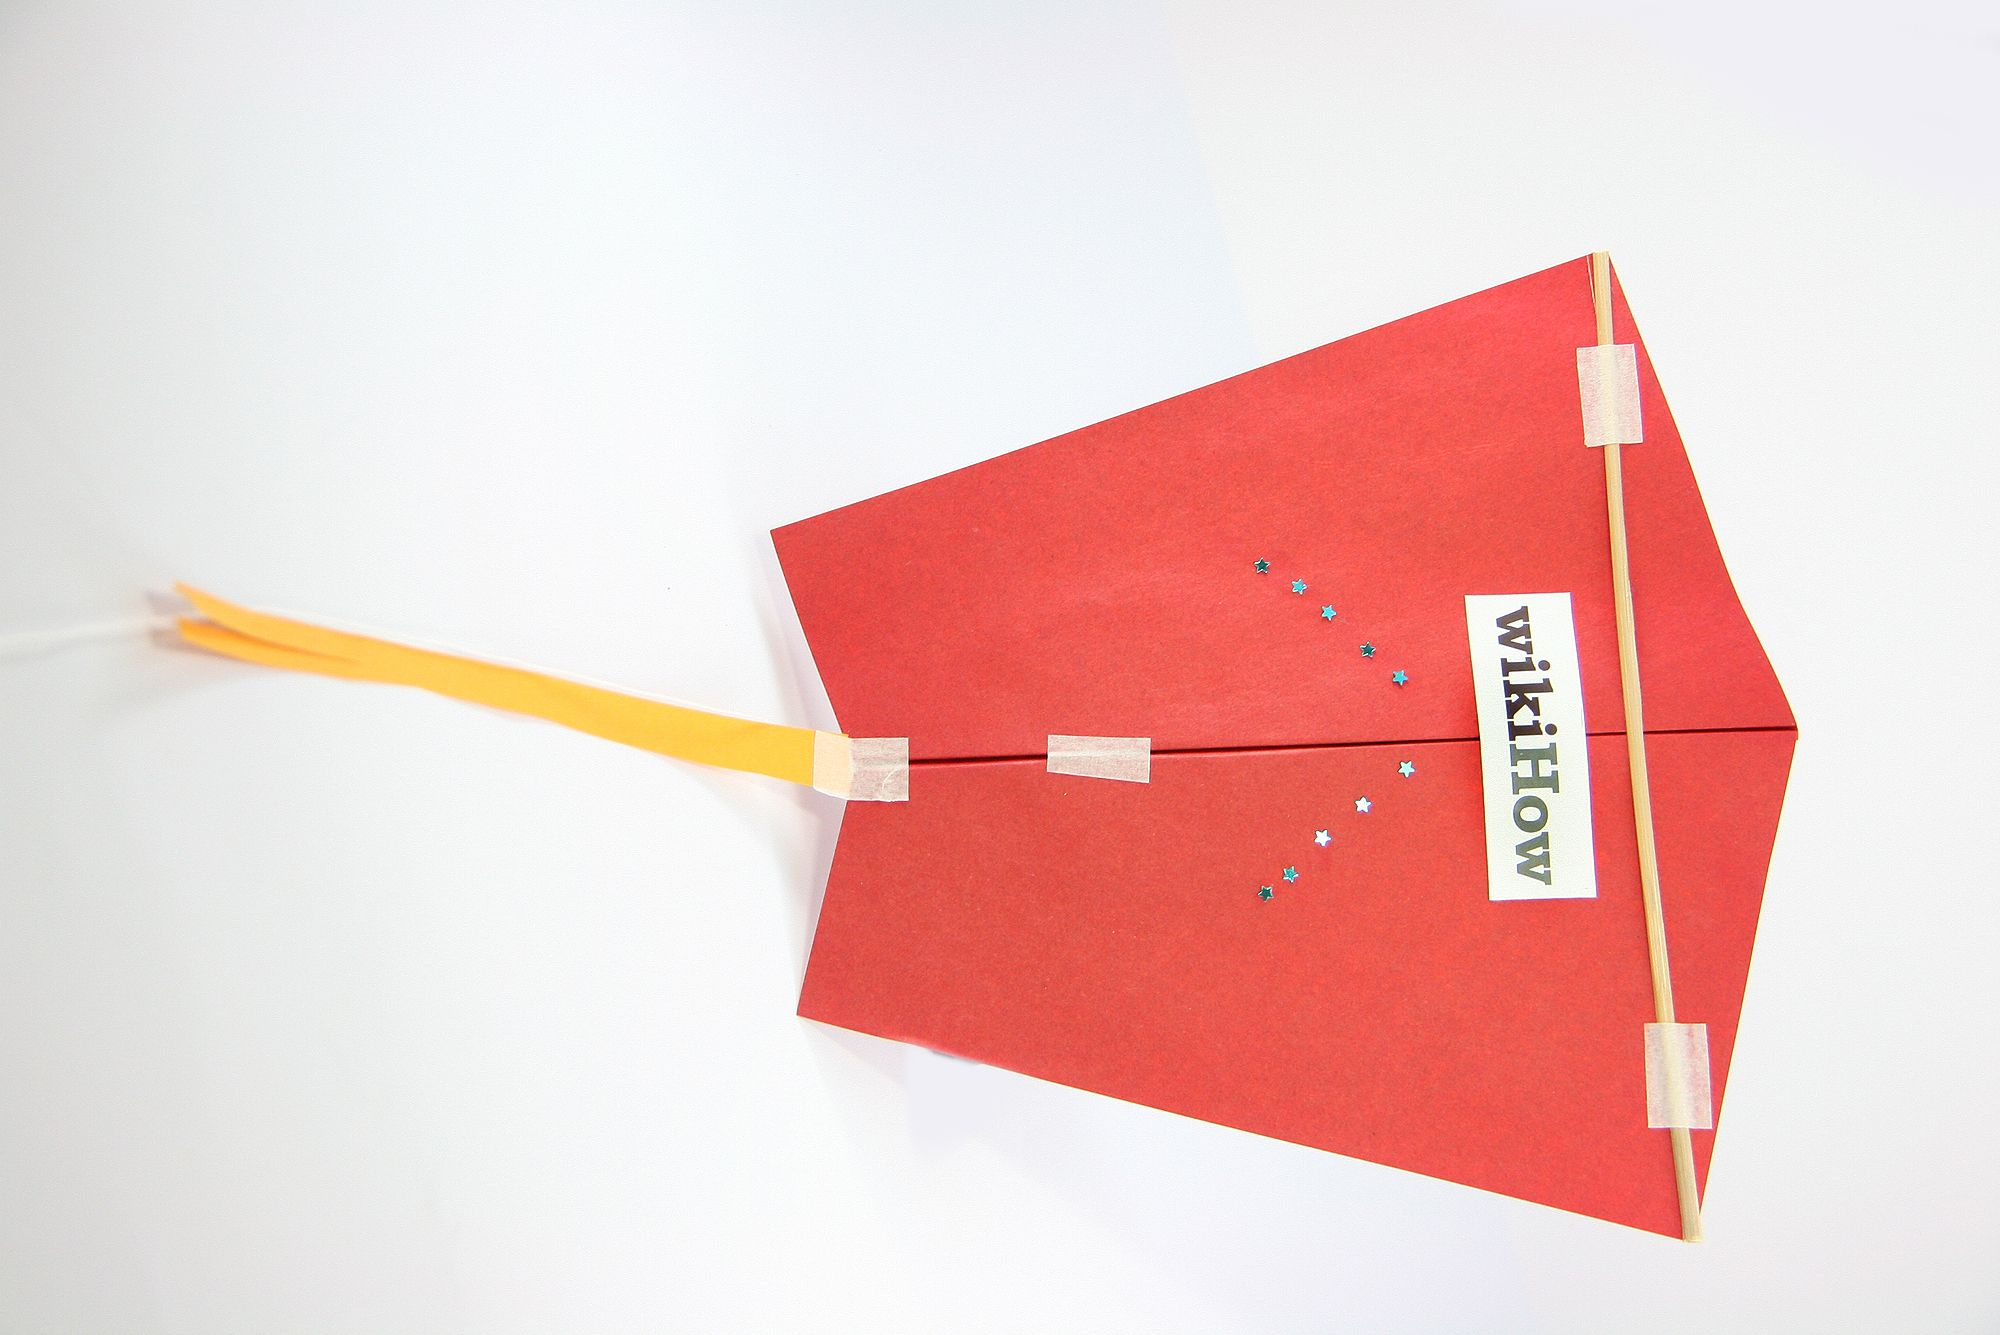 Make A Fast Kite With One Sheet Of Paper